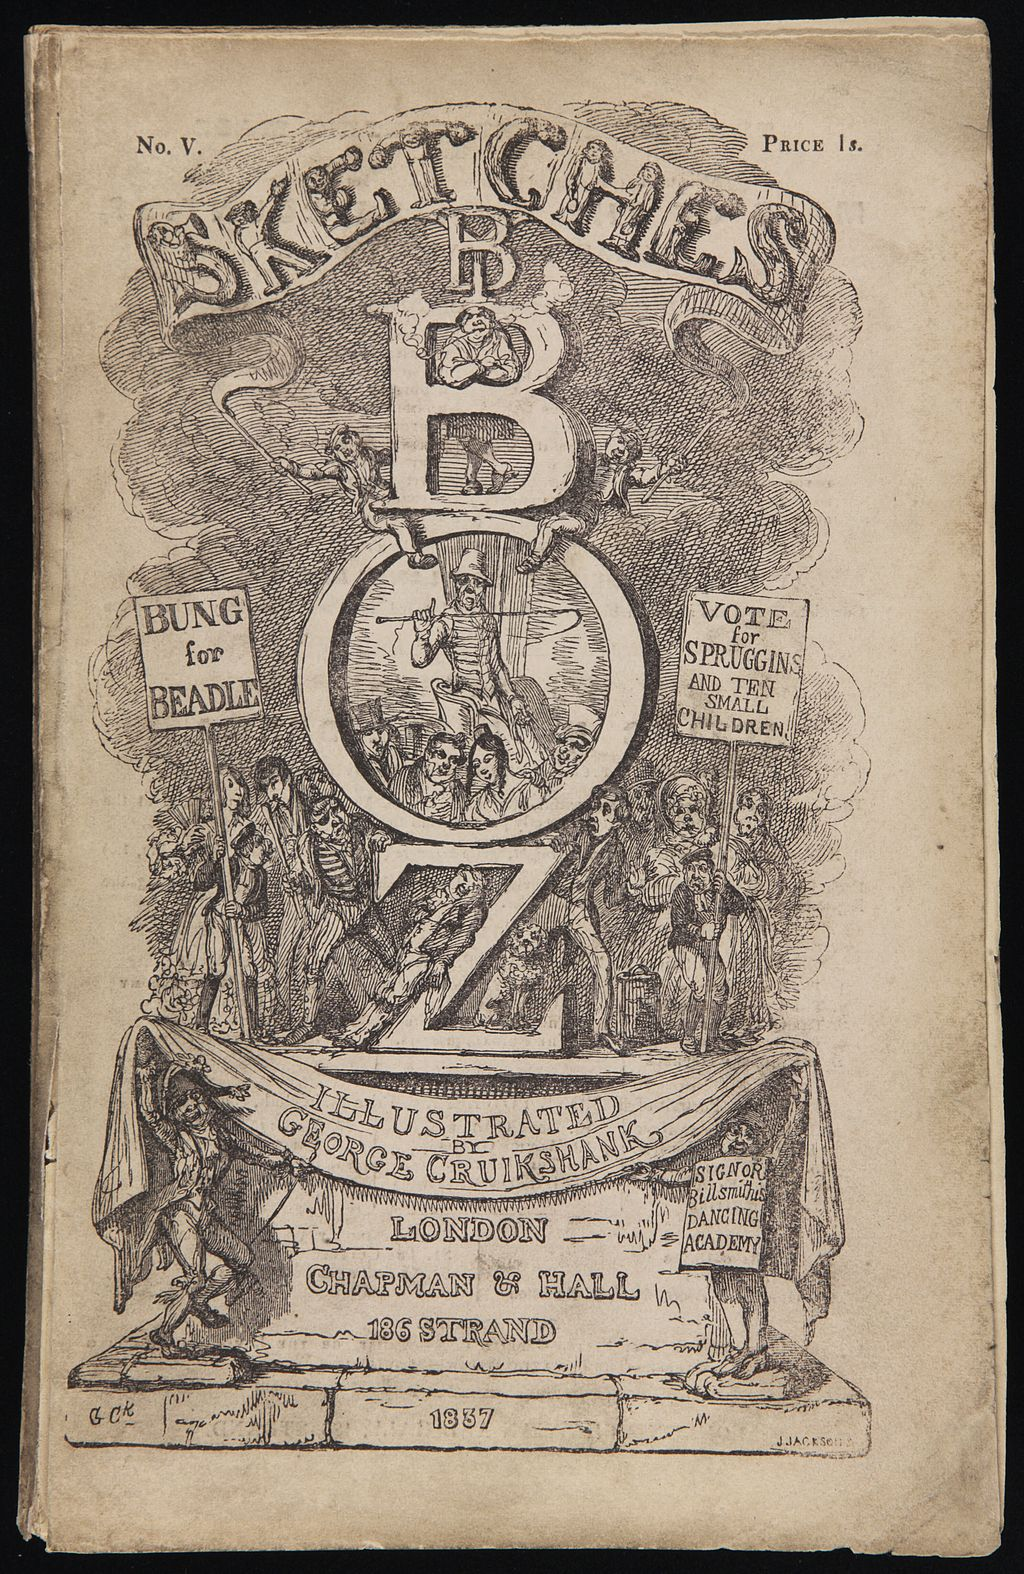 Sketches by Boz Cover by George Cruikshank [Public domain]